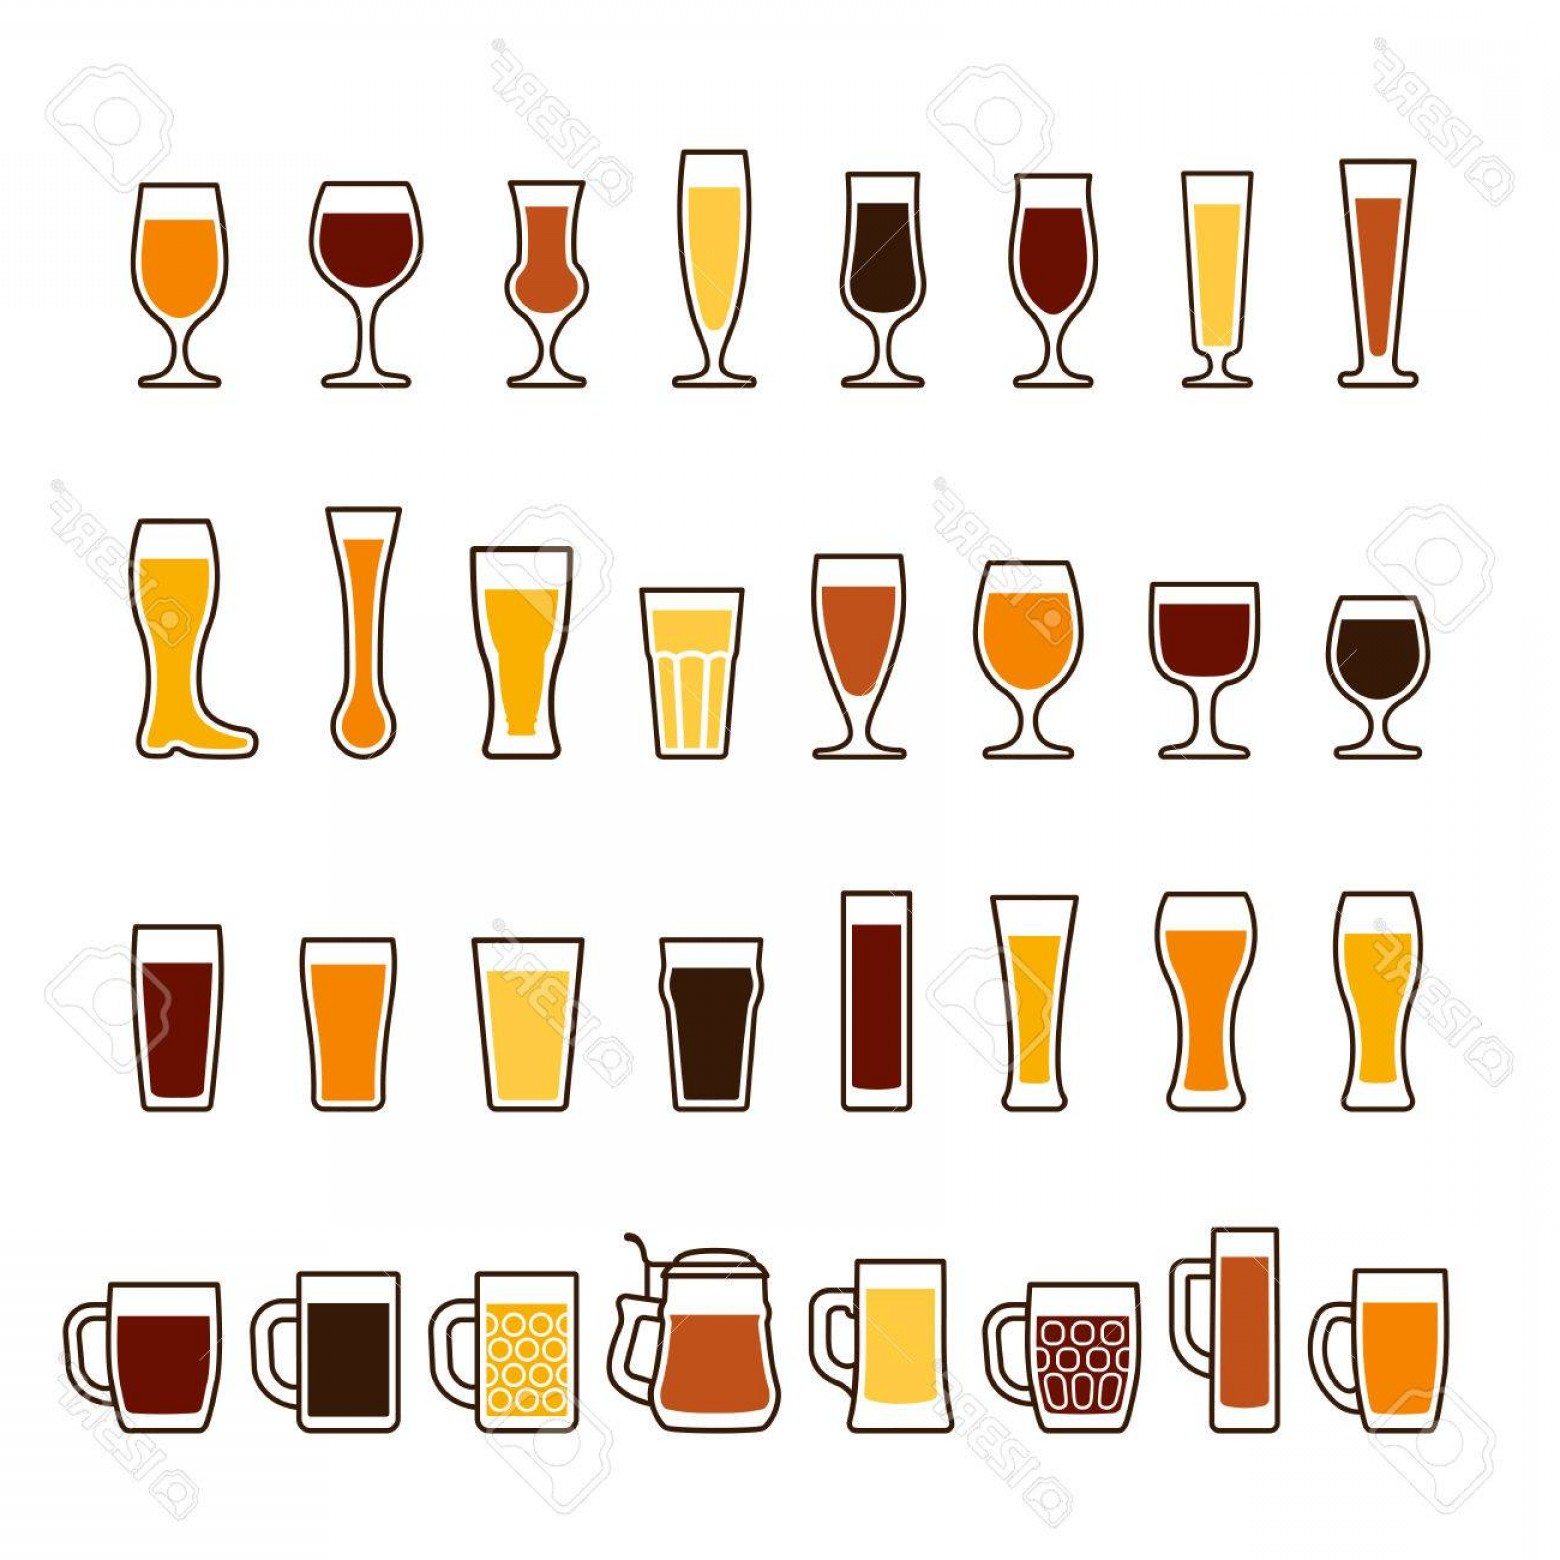 Beer Chalice Vector Logo: Photostock Vector Beer In Glasses And Mugs Different Types Vector Icon Set